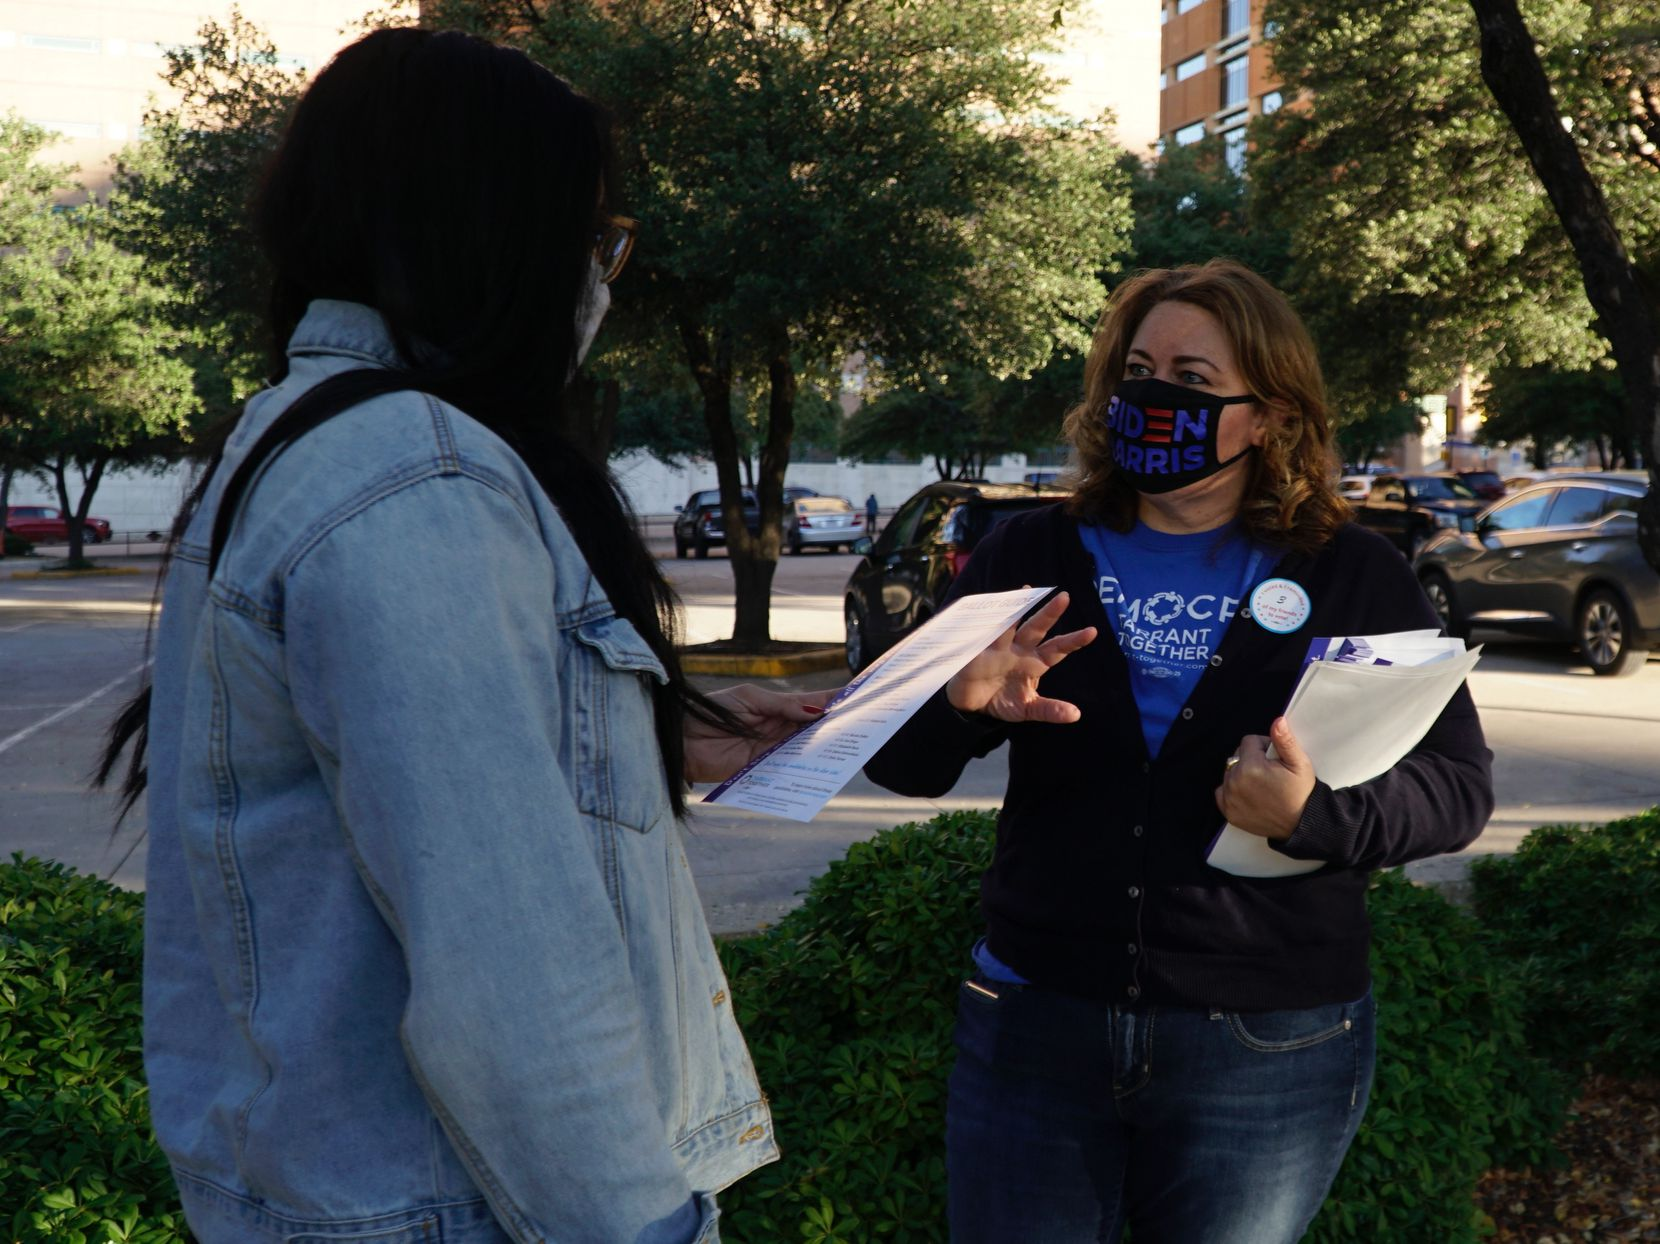 Biden volunteer Jana Lynne Sanchez handed out voting information outside the Tarrant County Plaza building in downtown Fort Worth on Nov. 3, 2020.